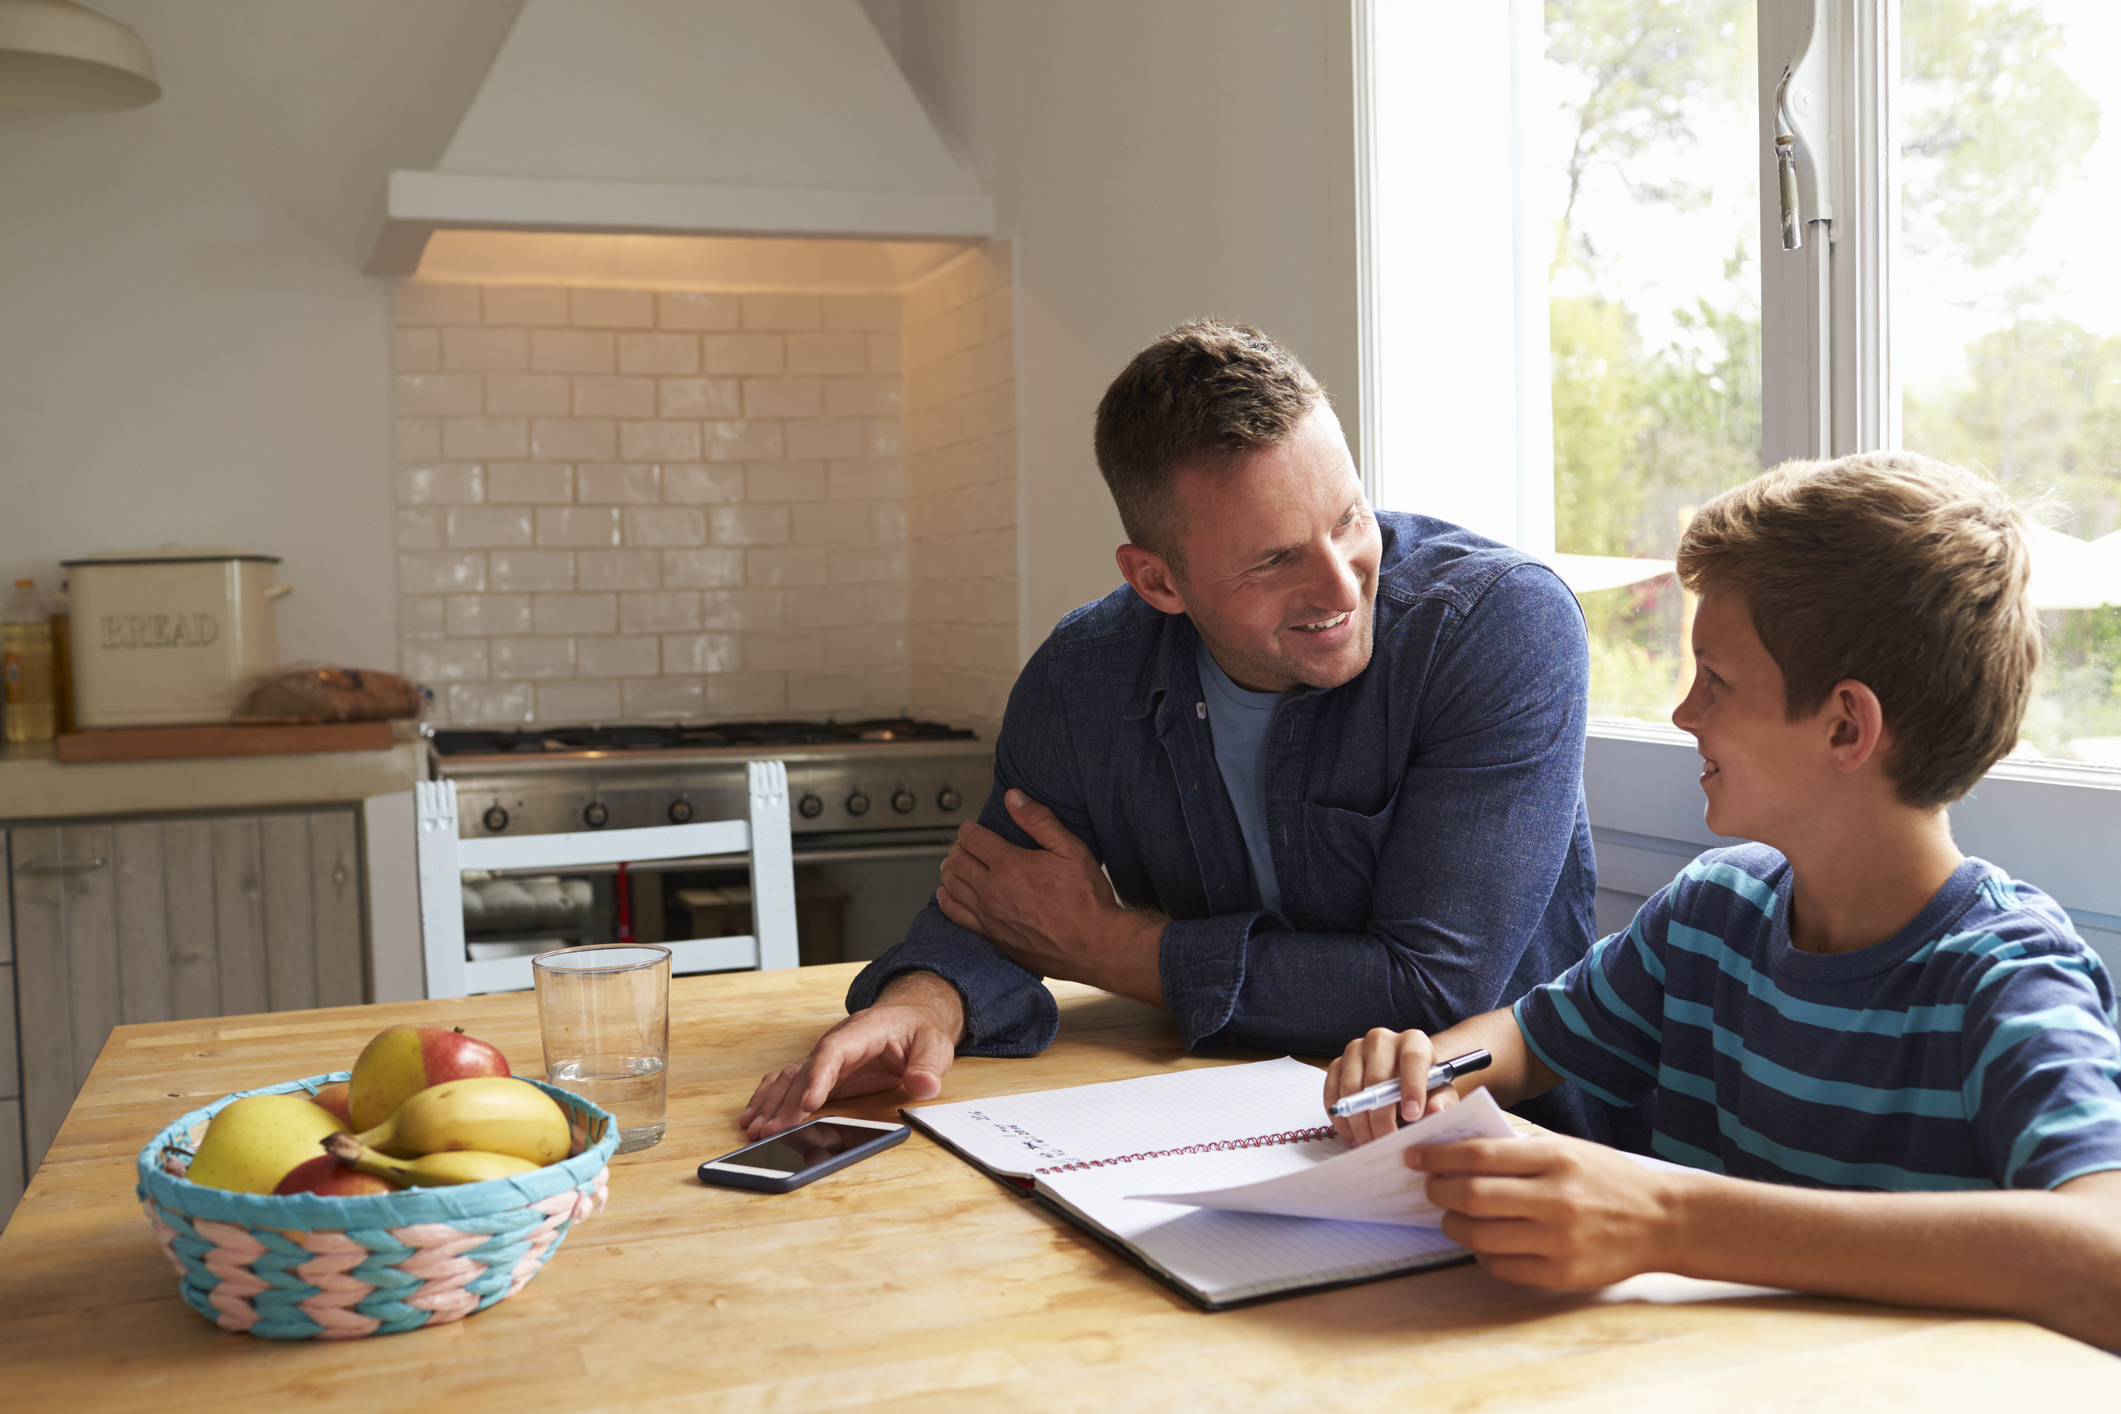 4 Conversations to Have Before Middle School Starts | Parent Cue Blog